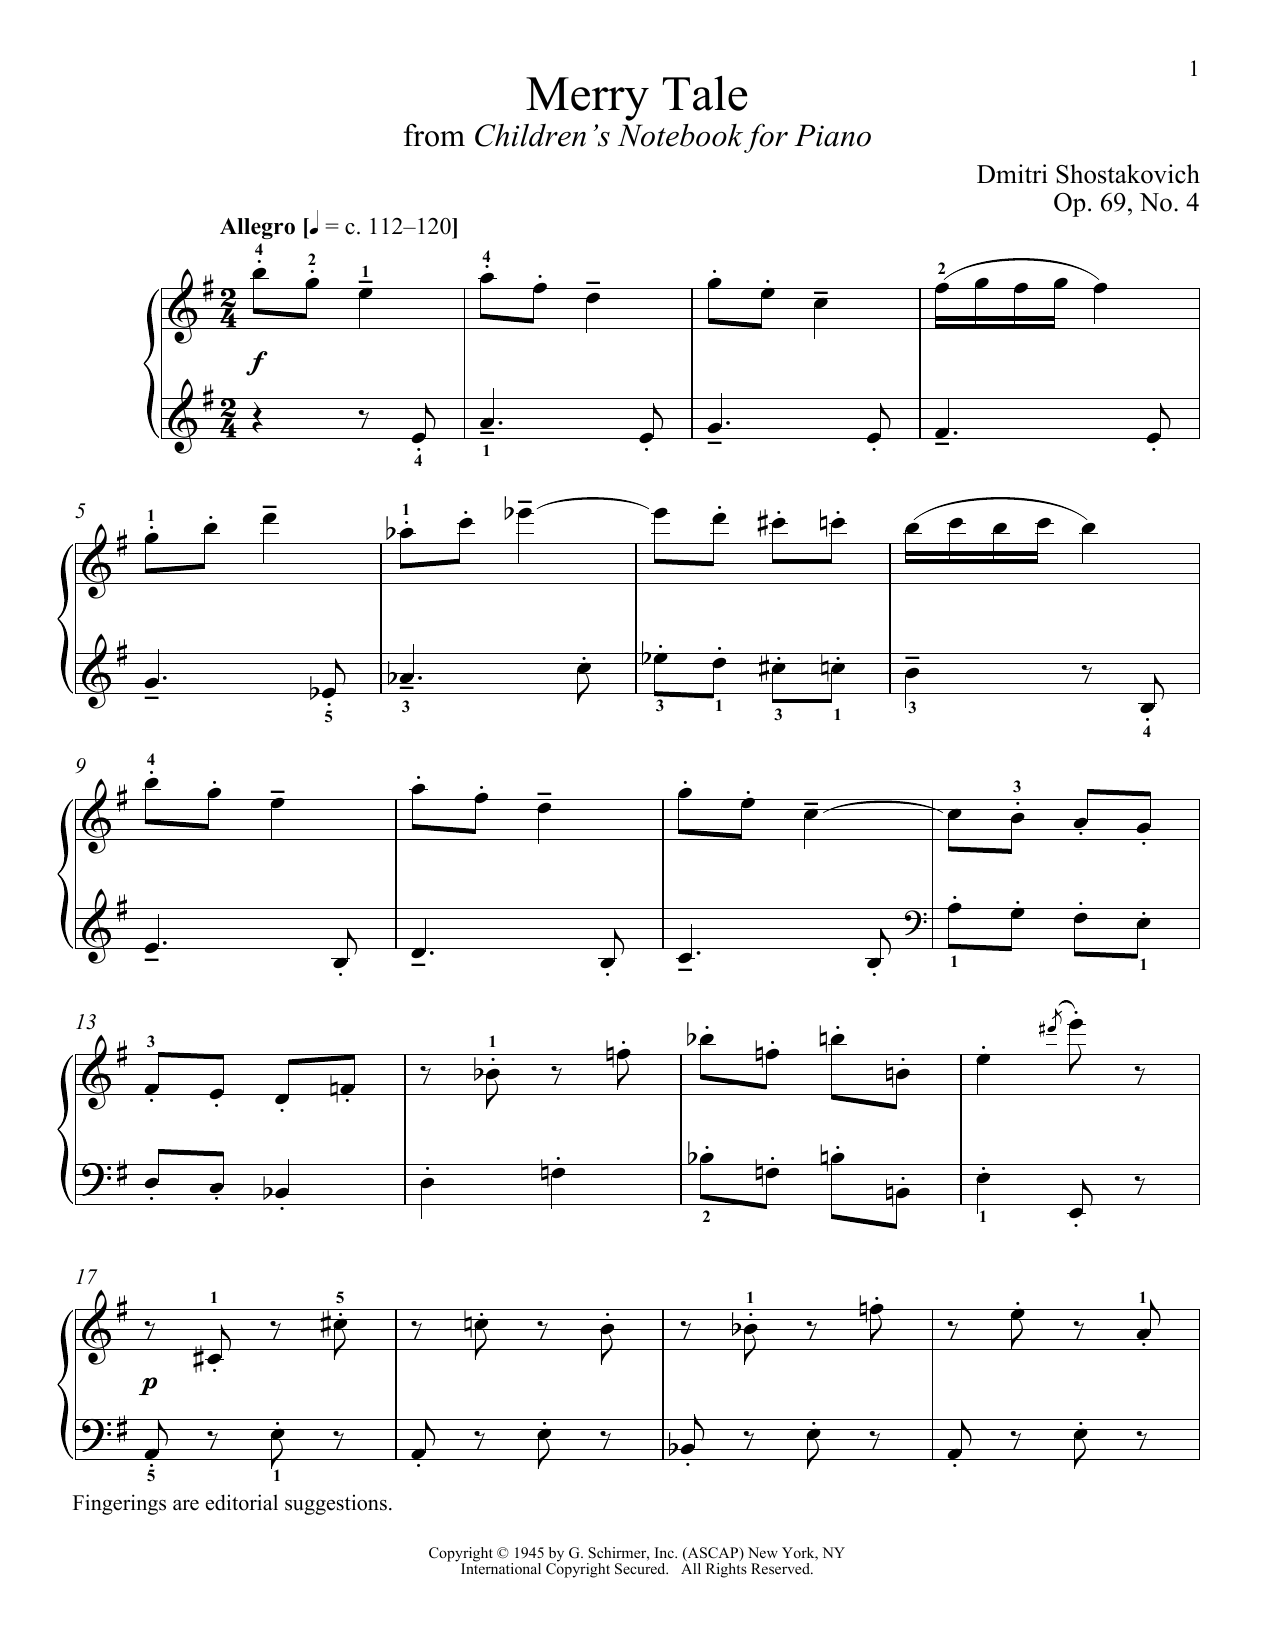 Dmitri Shostakovich Merry Tale sheet music notes and chords. Download Printable PDF.